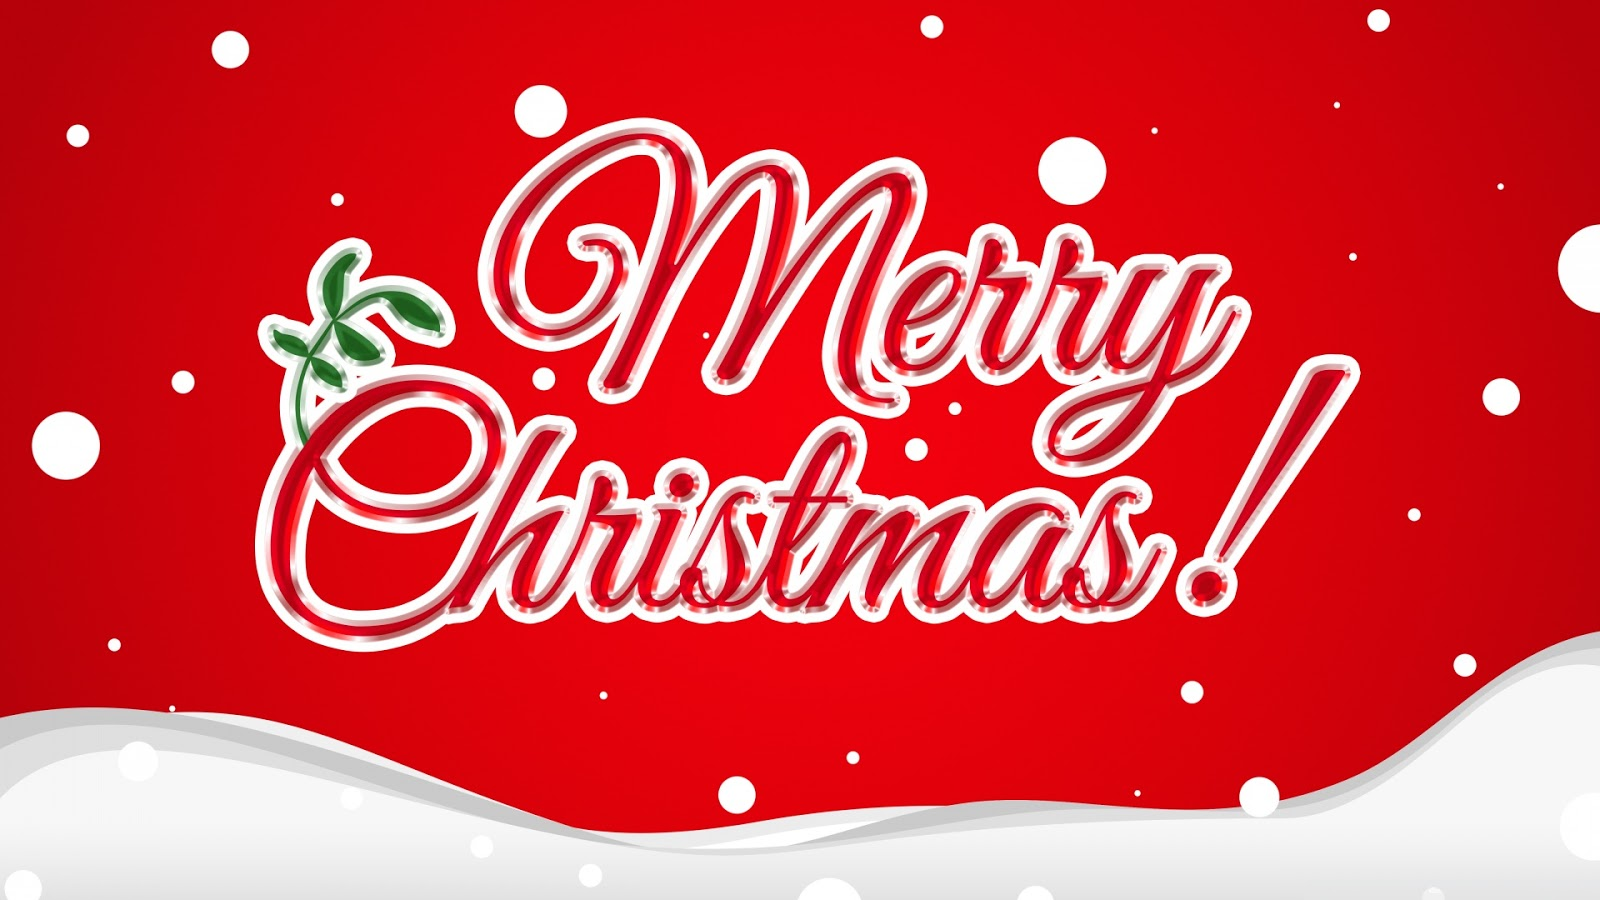 Banner card of Merry Christmas greeting sign with fancy text